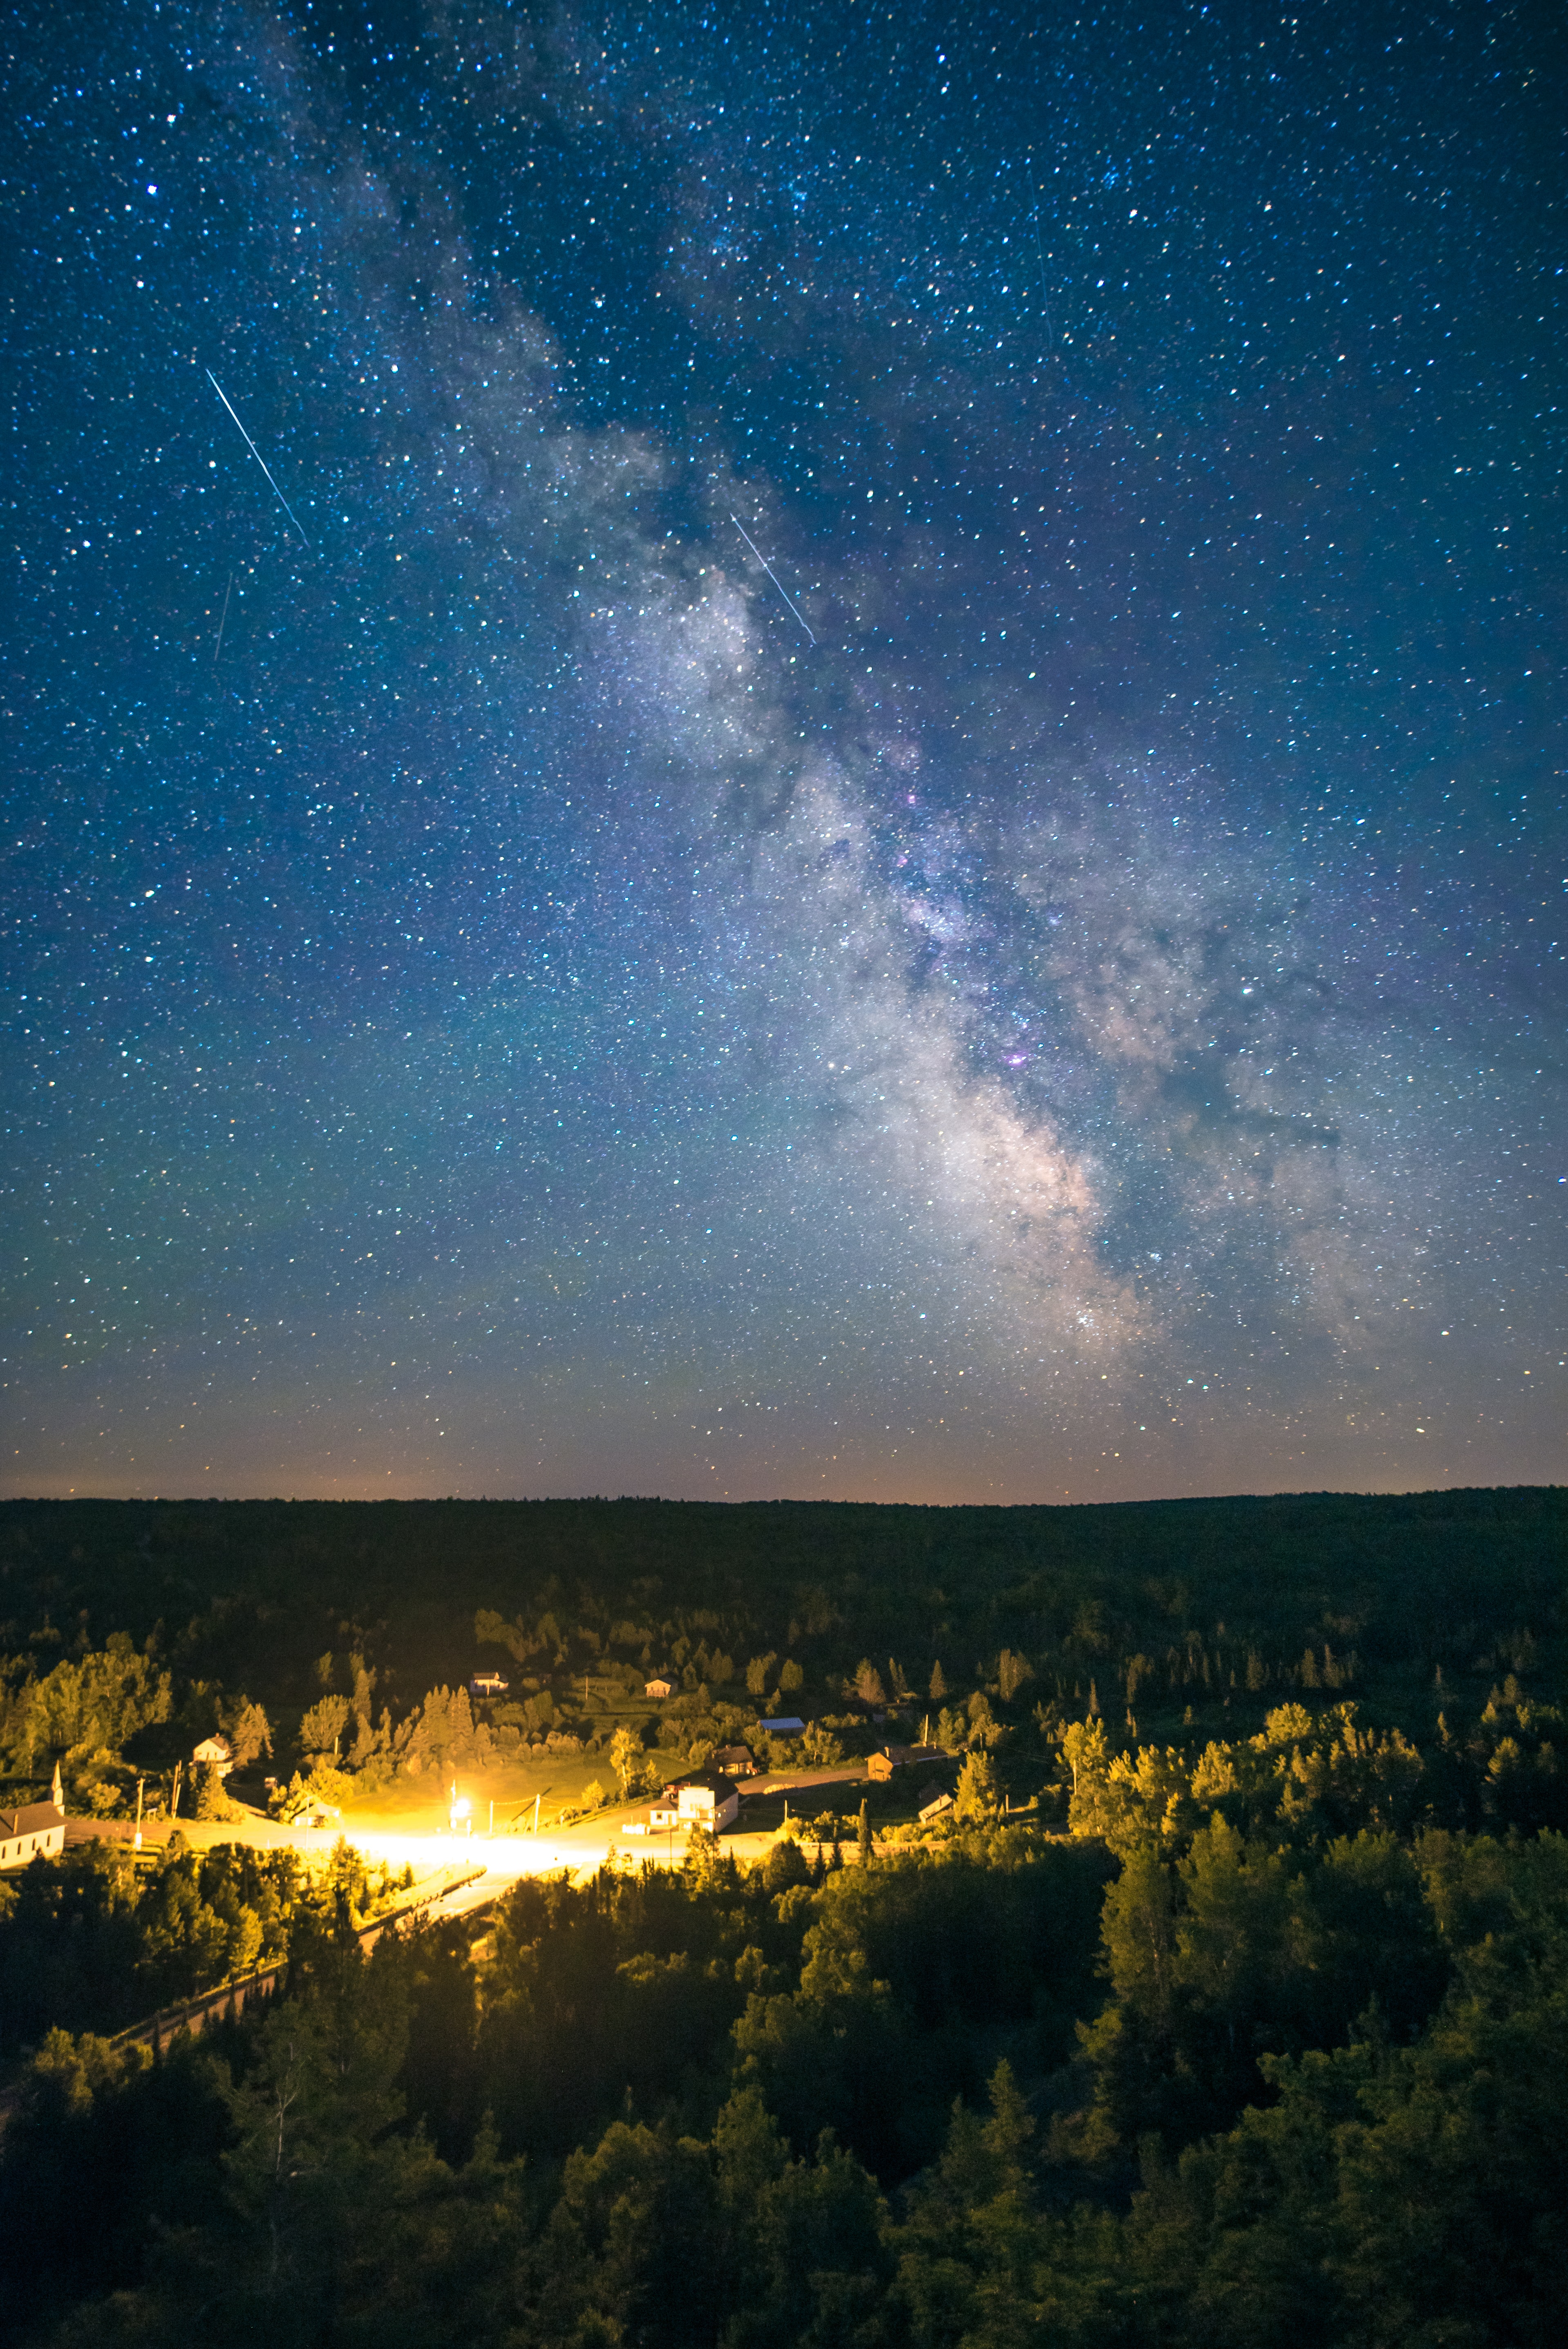 Time lapse of a galaxy over a small town and expansive forest